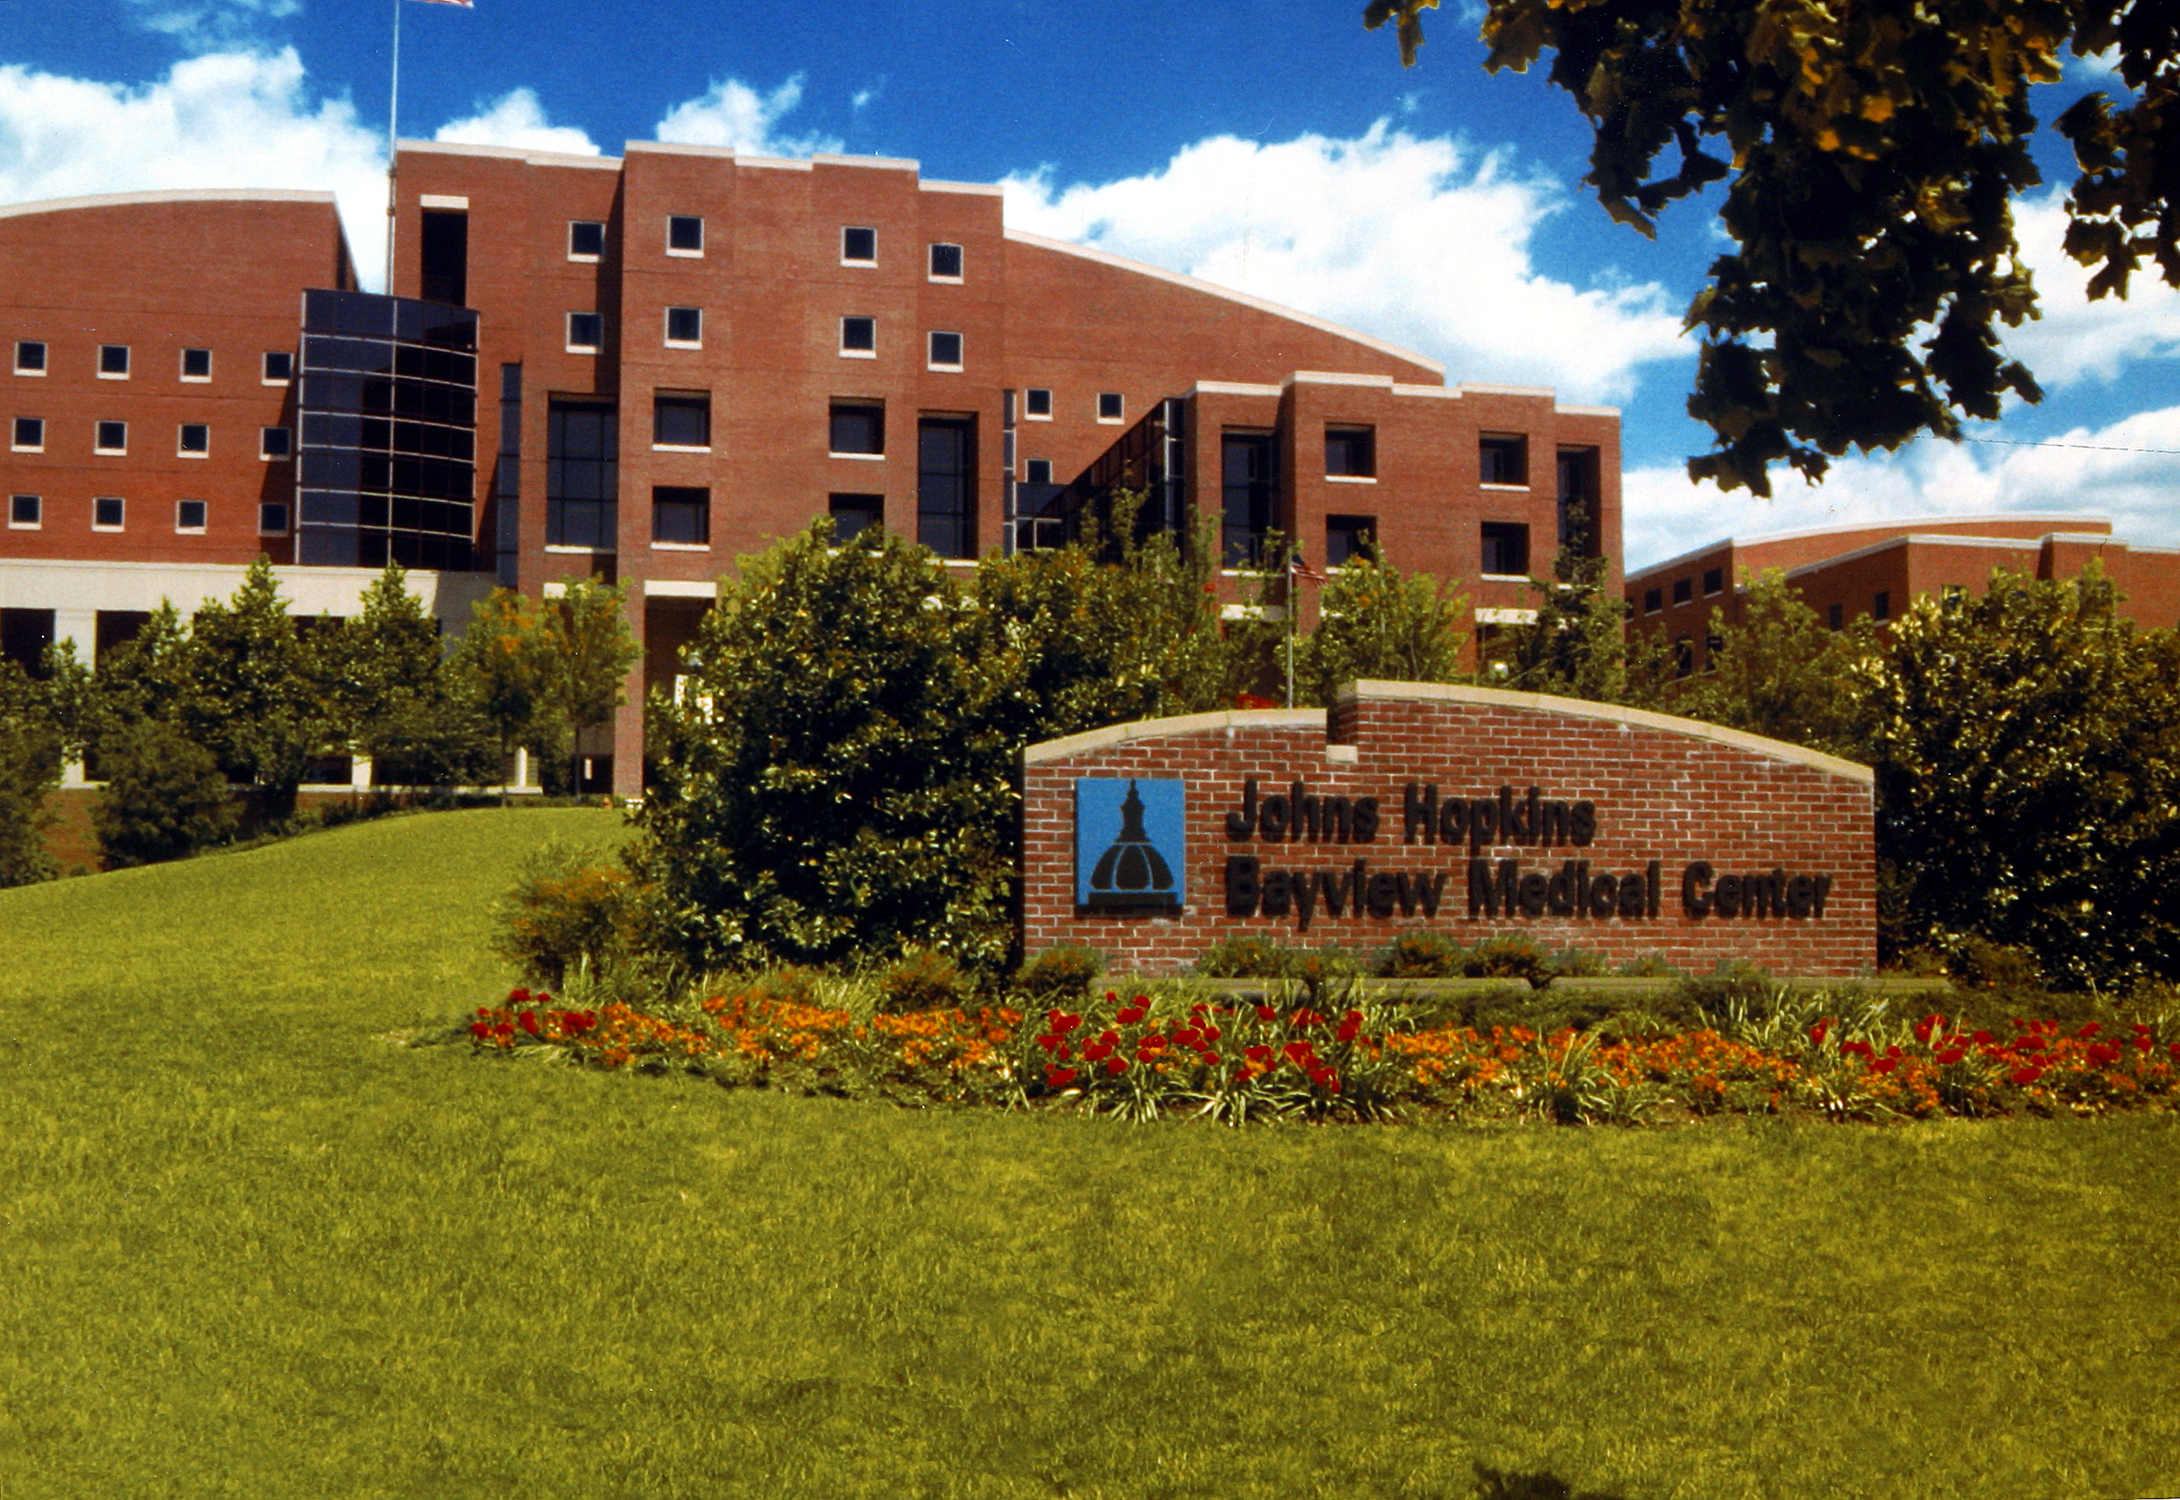 Johns Hopkins Bayview Hospital Emergency Room